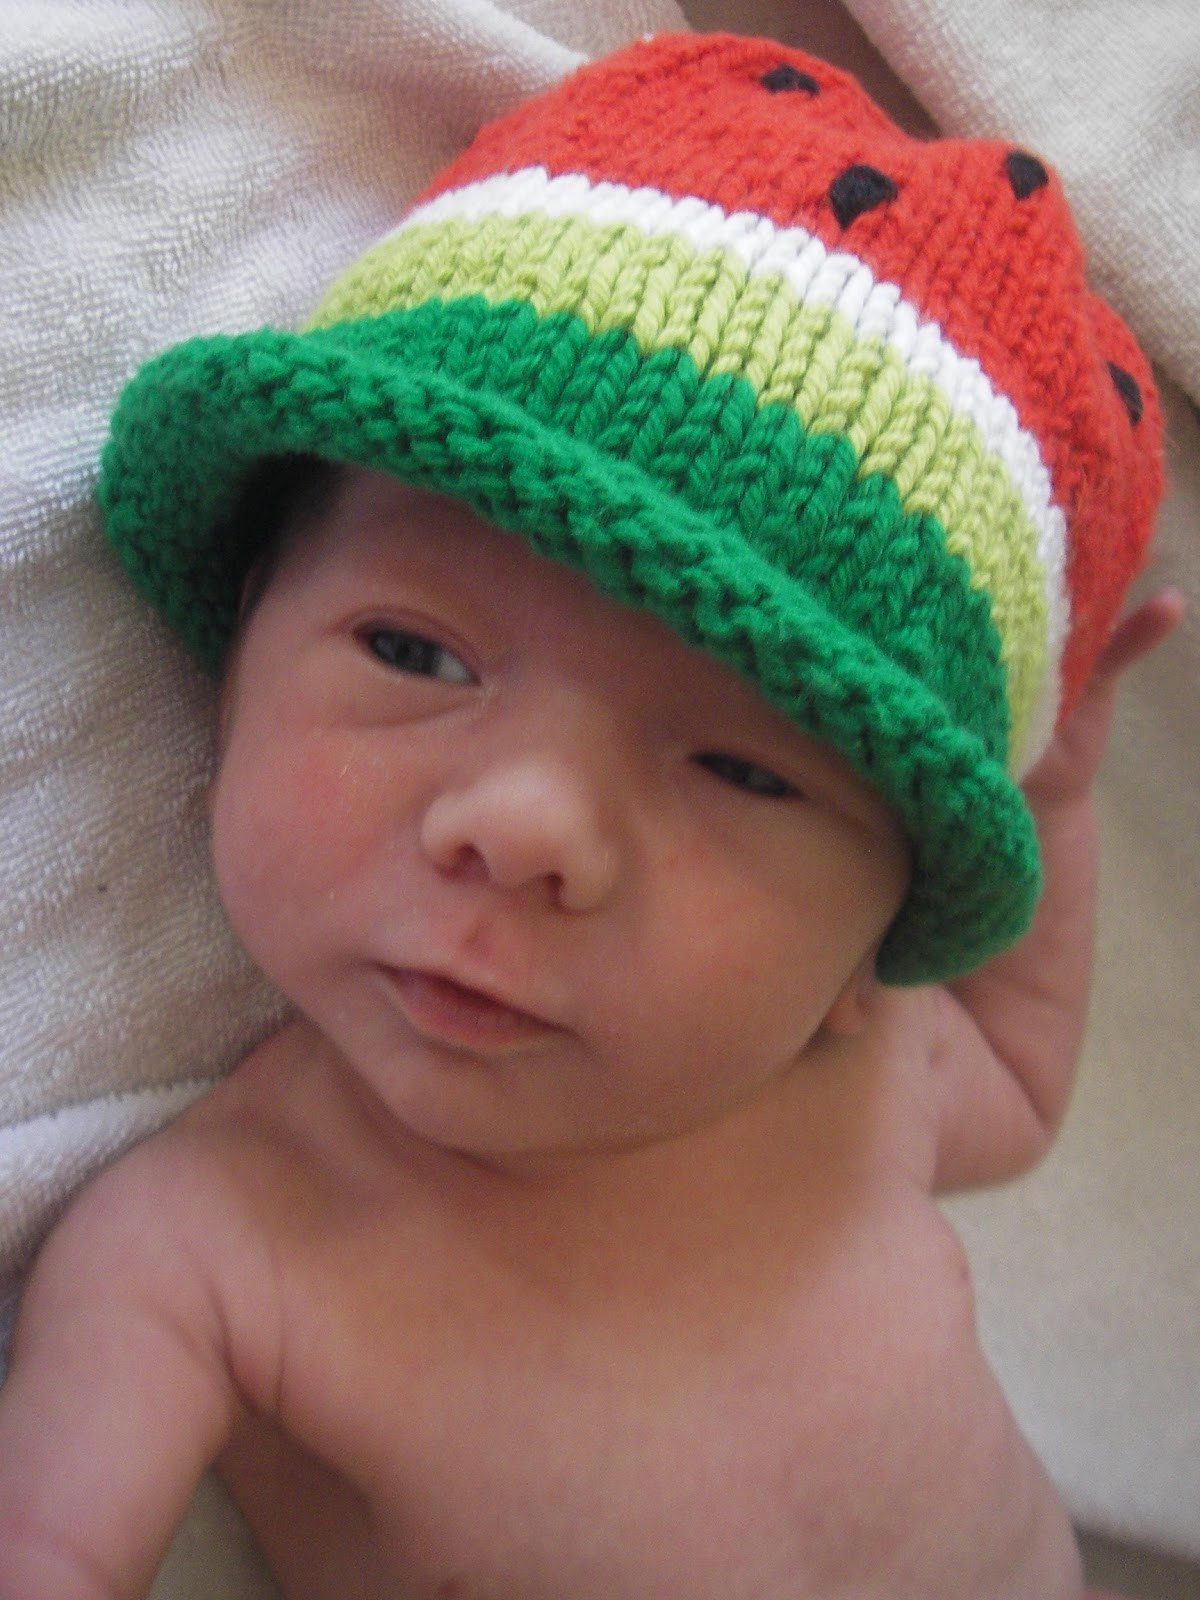 Best Of Kelknits Knitting In Hawaii Baby In Knitted Hats Knitting Baby Cap Of Lovely 48 Photos Knitting Baby Cap